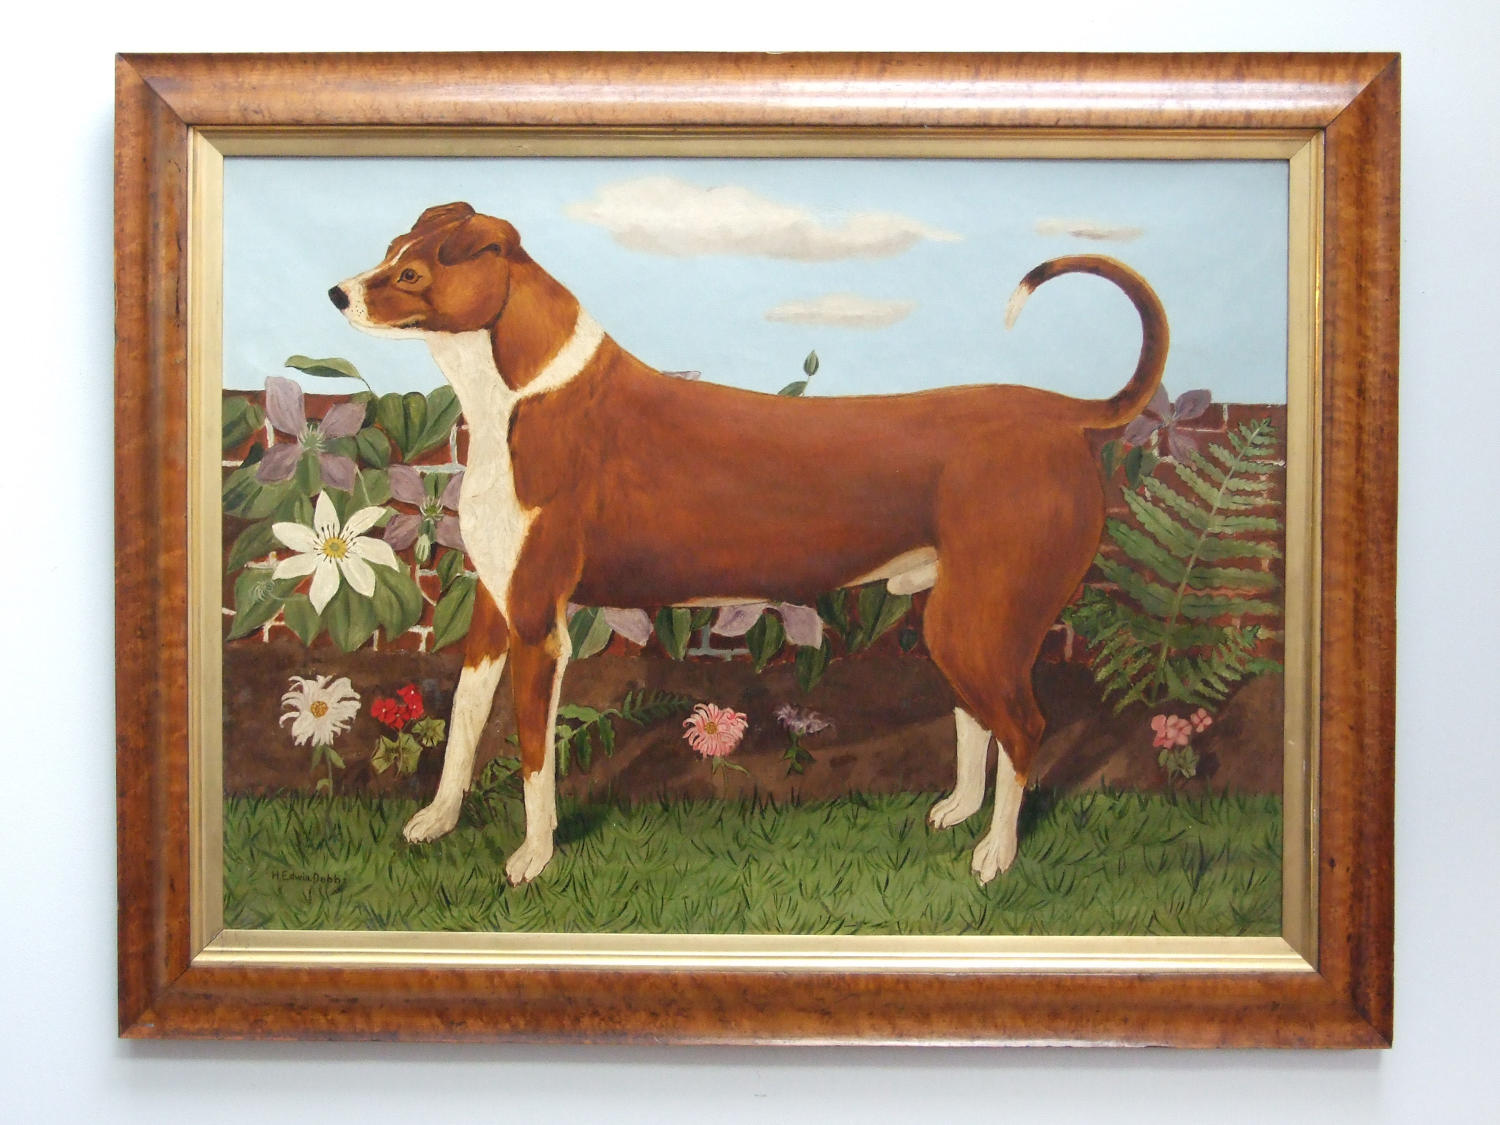 Naive oil painting of dog in garden